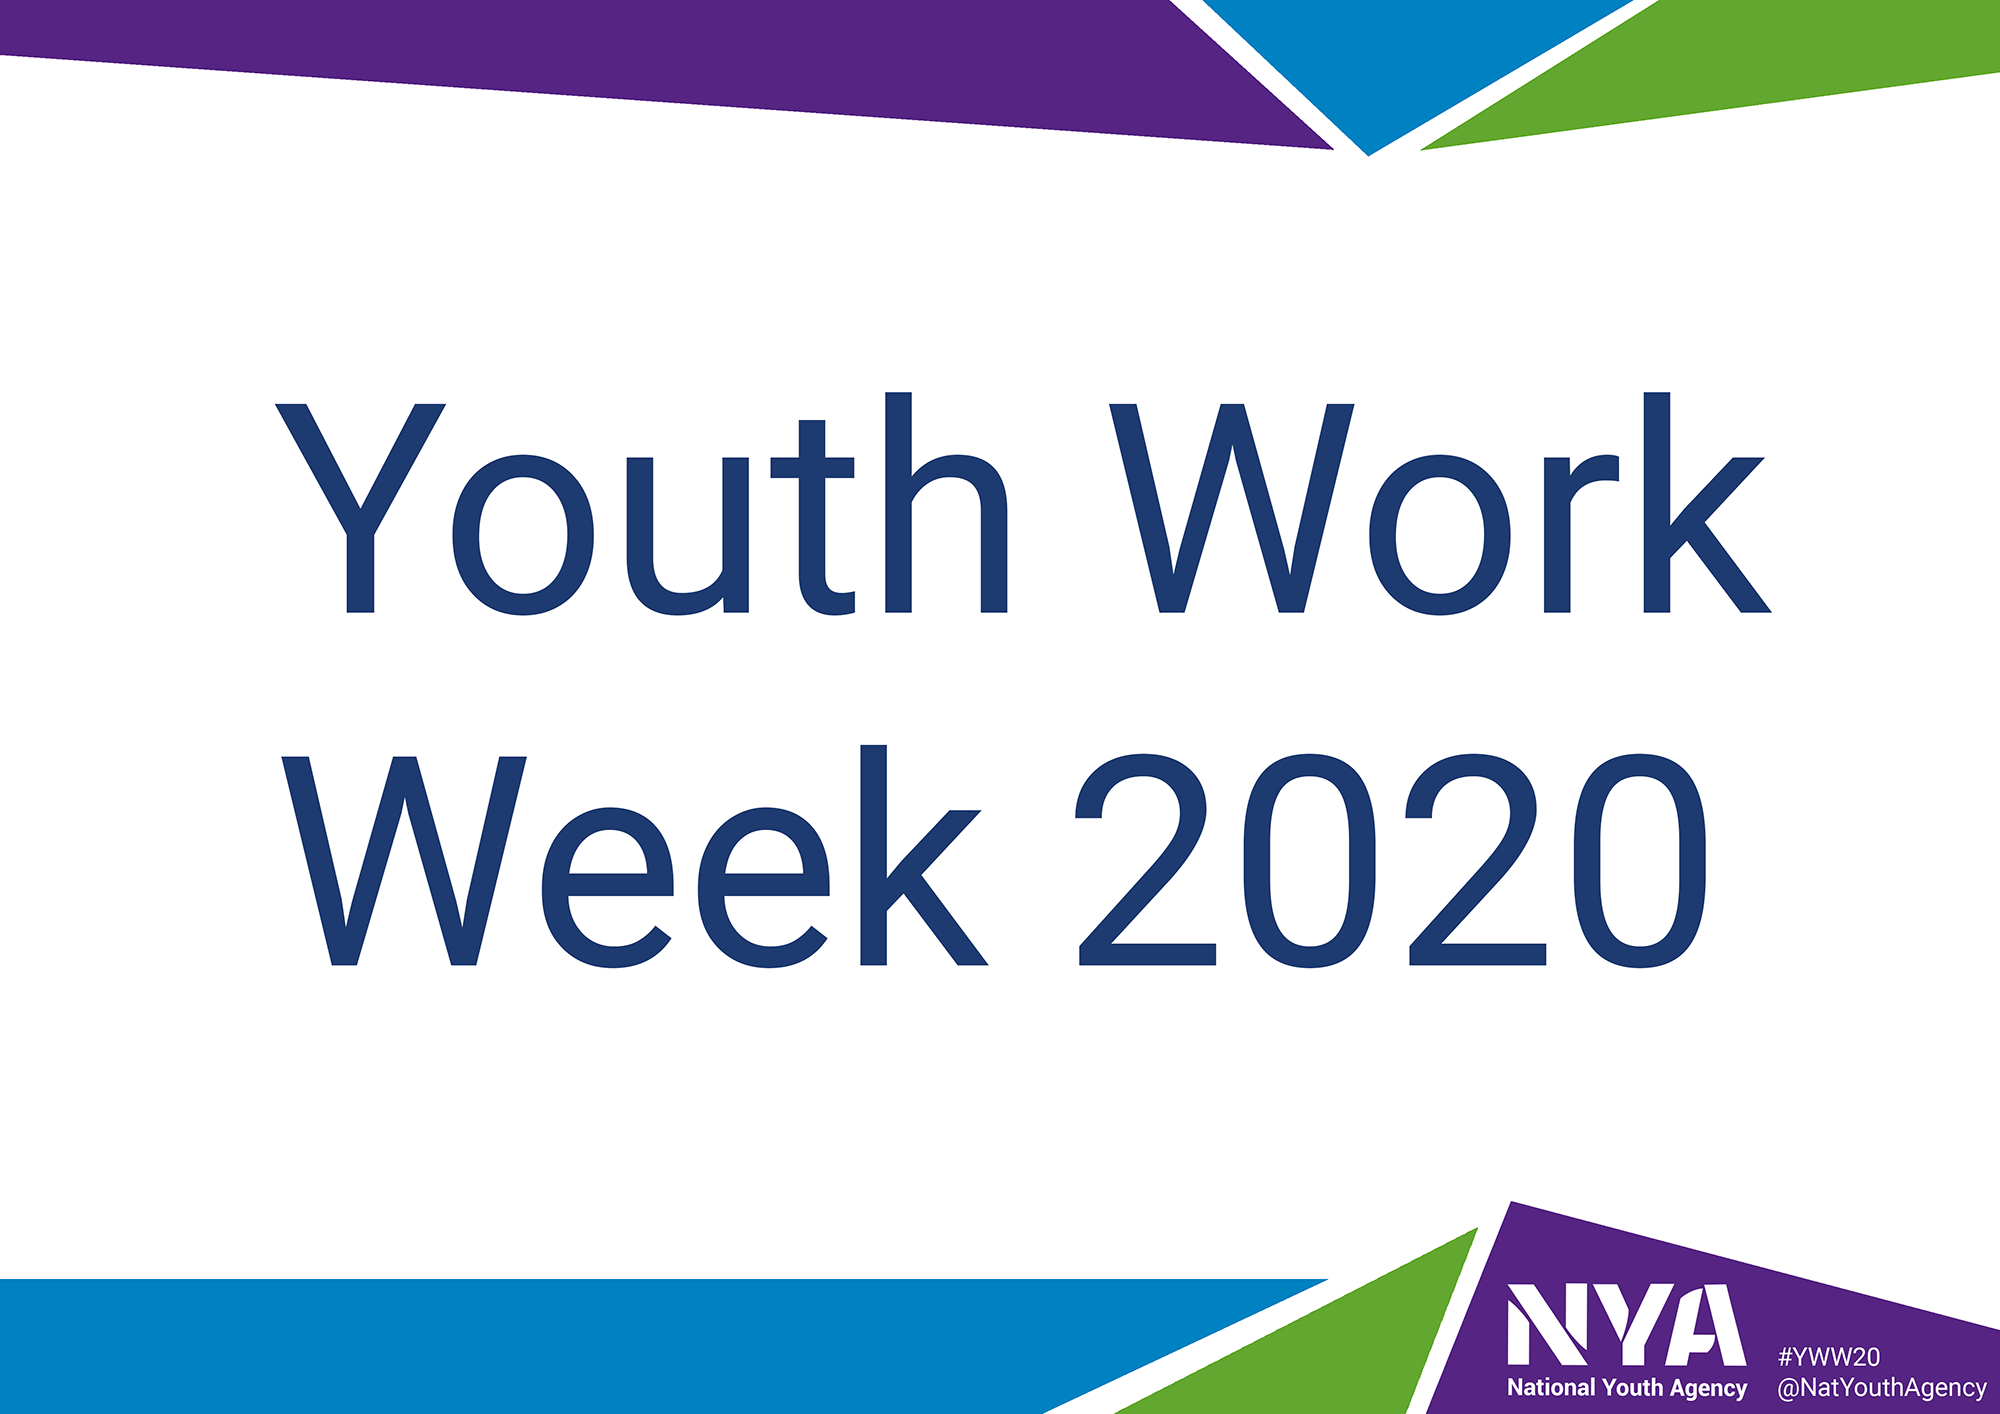 Youth Work – Moving Past Lockdown